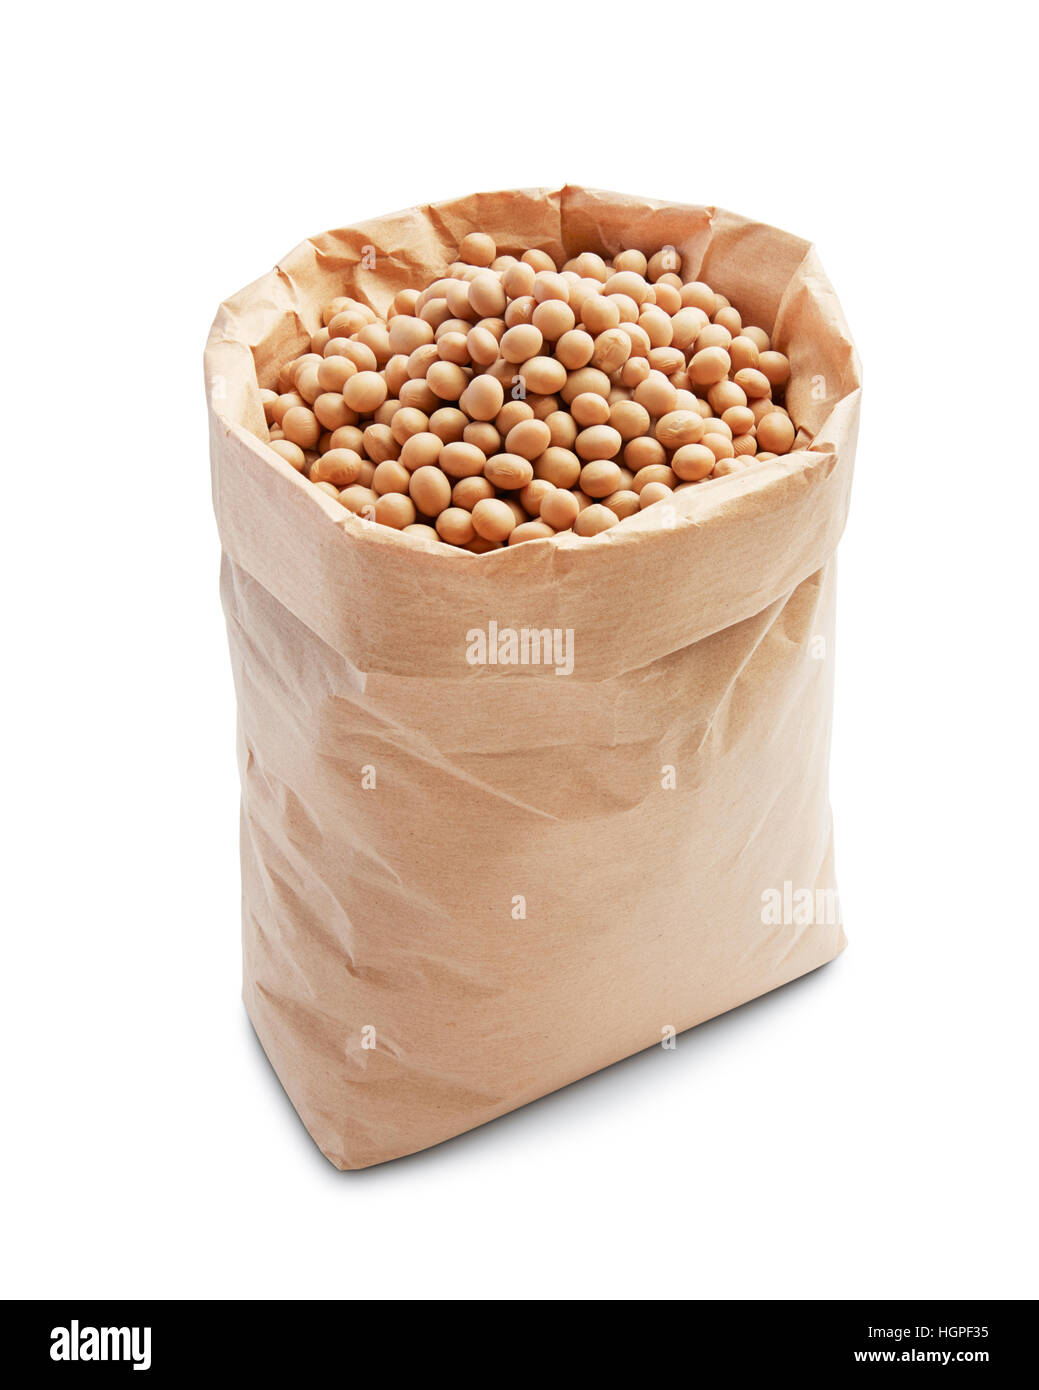 soybeans in paper bag isolated on white - Stock Image